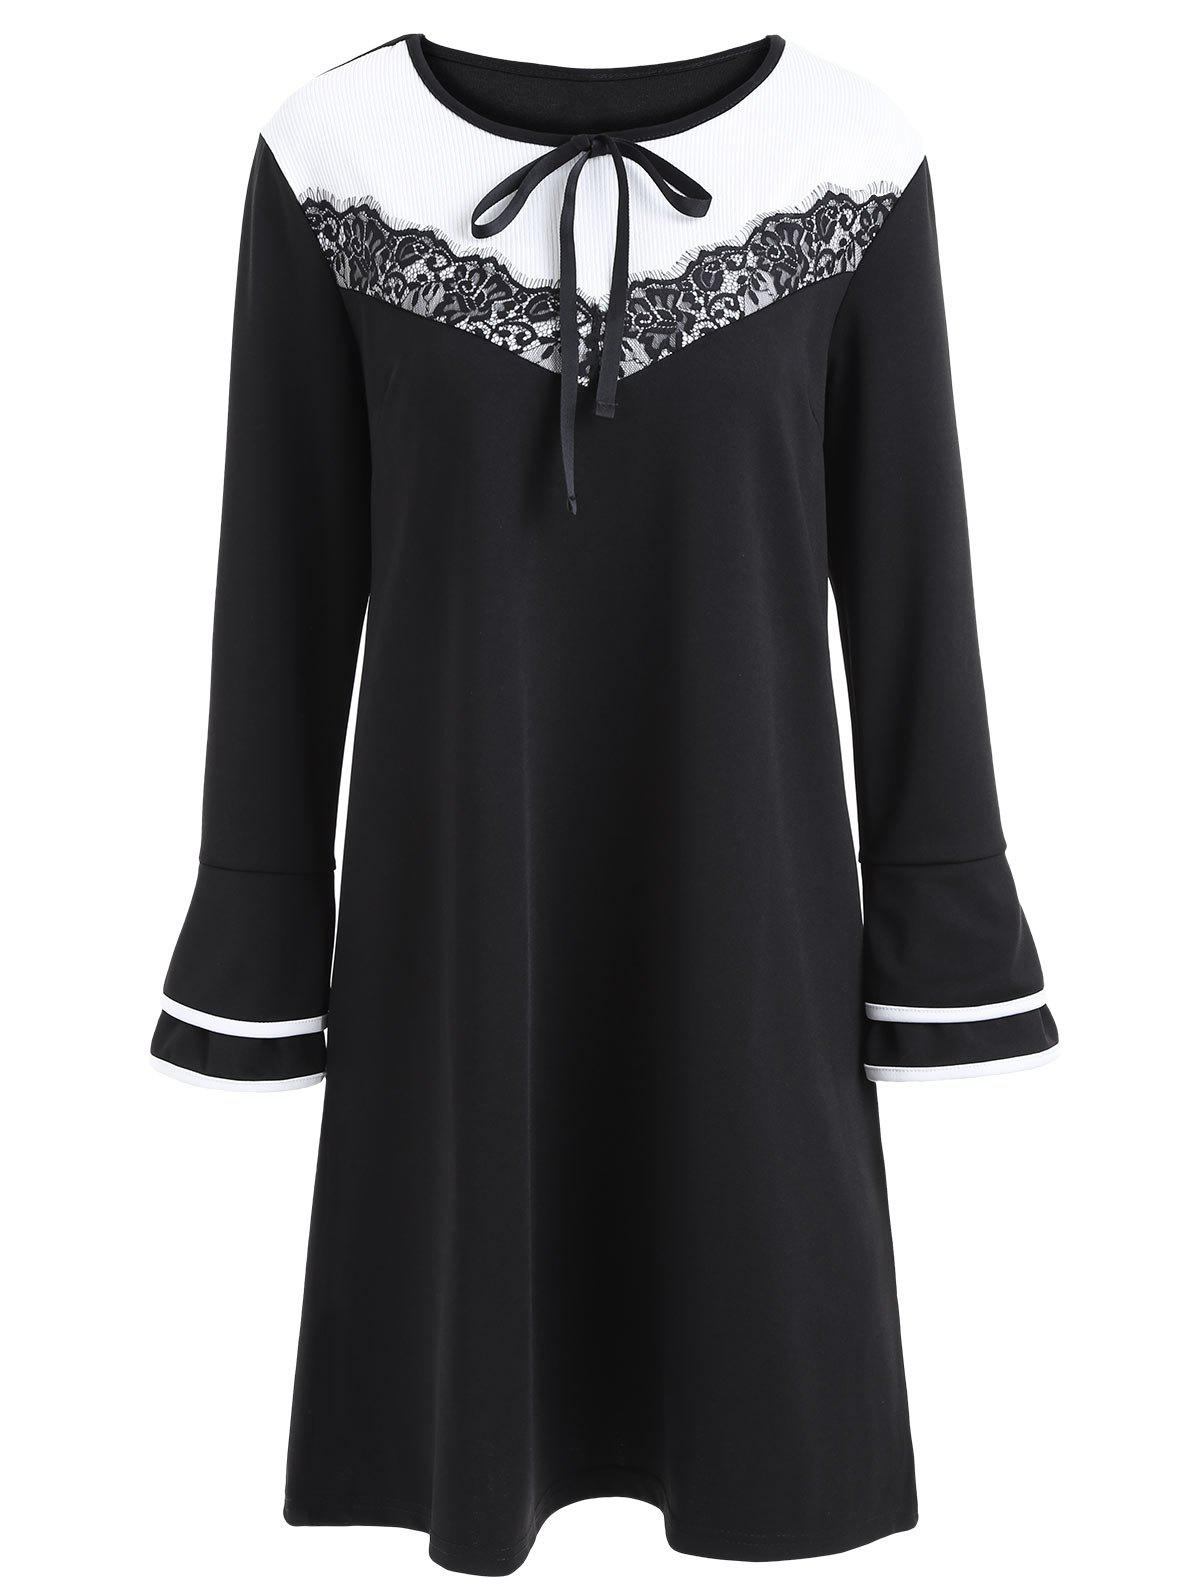 Plus Size Lace Insert Bell Sleeve Dress - BLACK 5XL